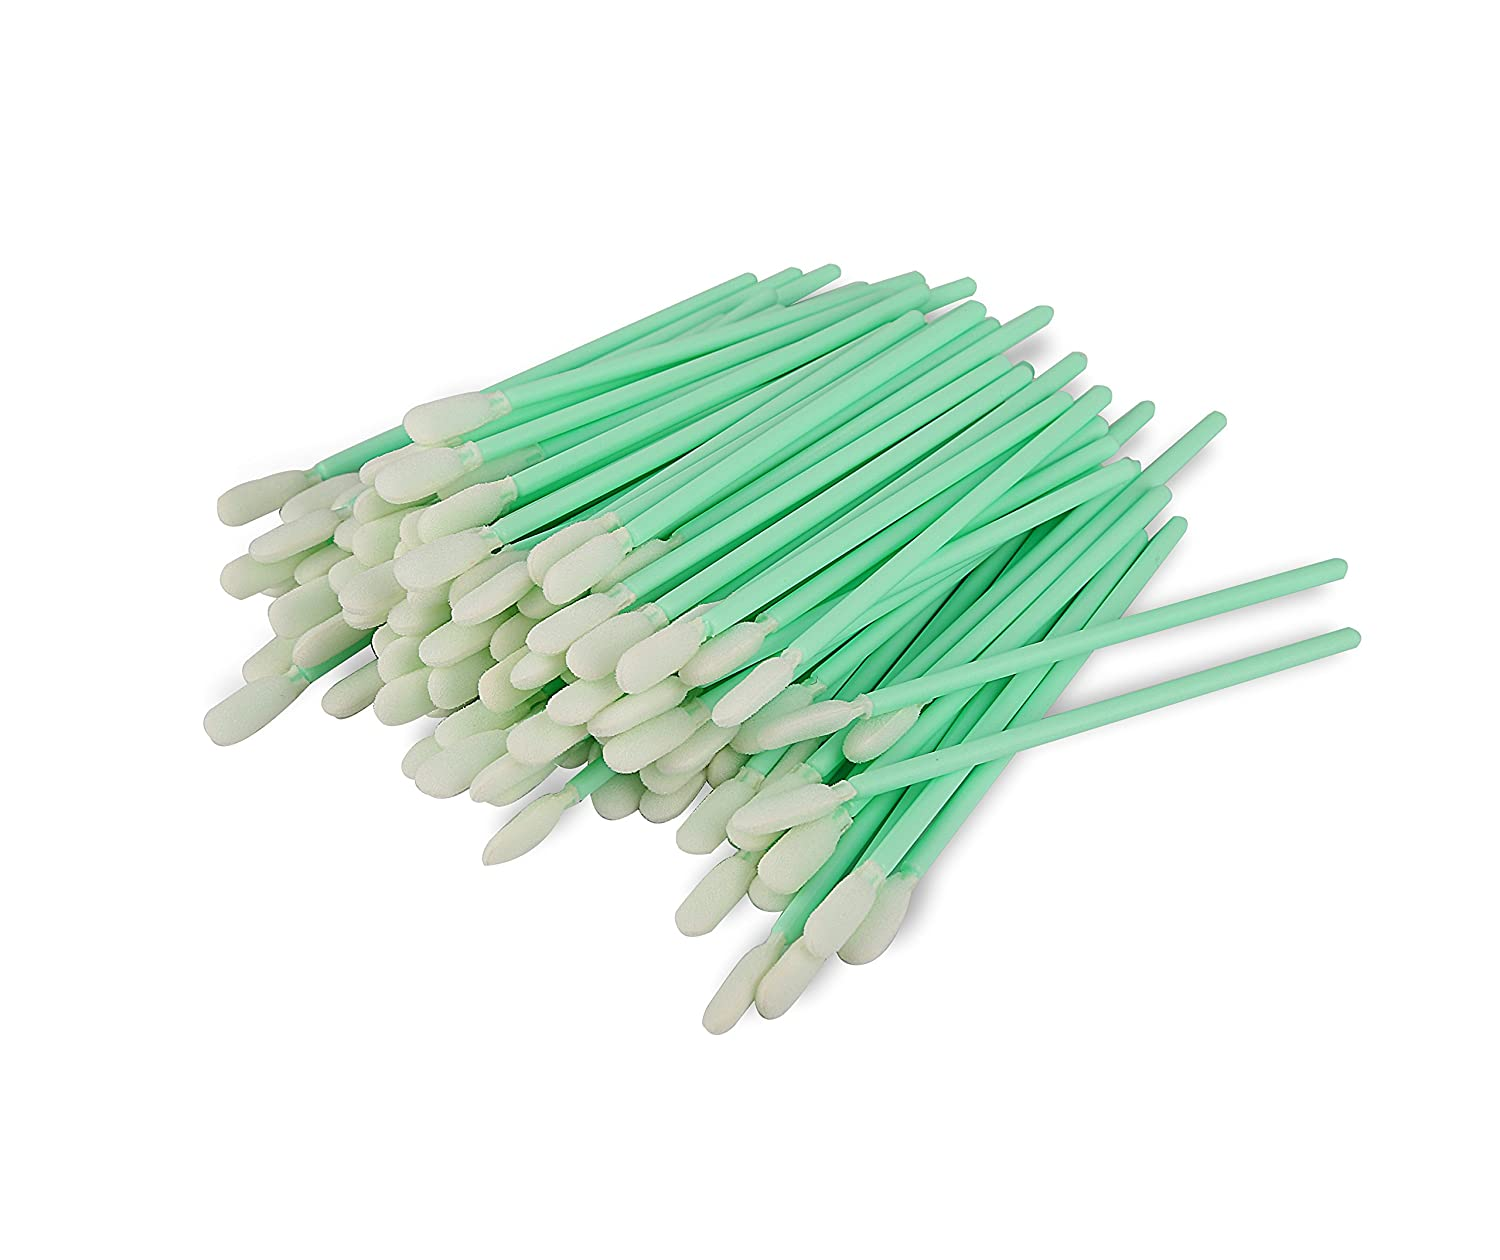 100 Small Cleaning Foam Swabs For Inkjet Printers *USA SELLER* FAST SHIPPING